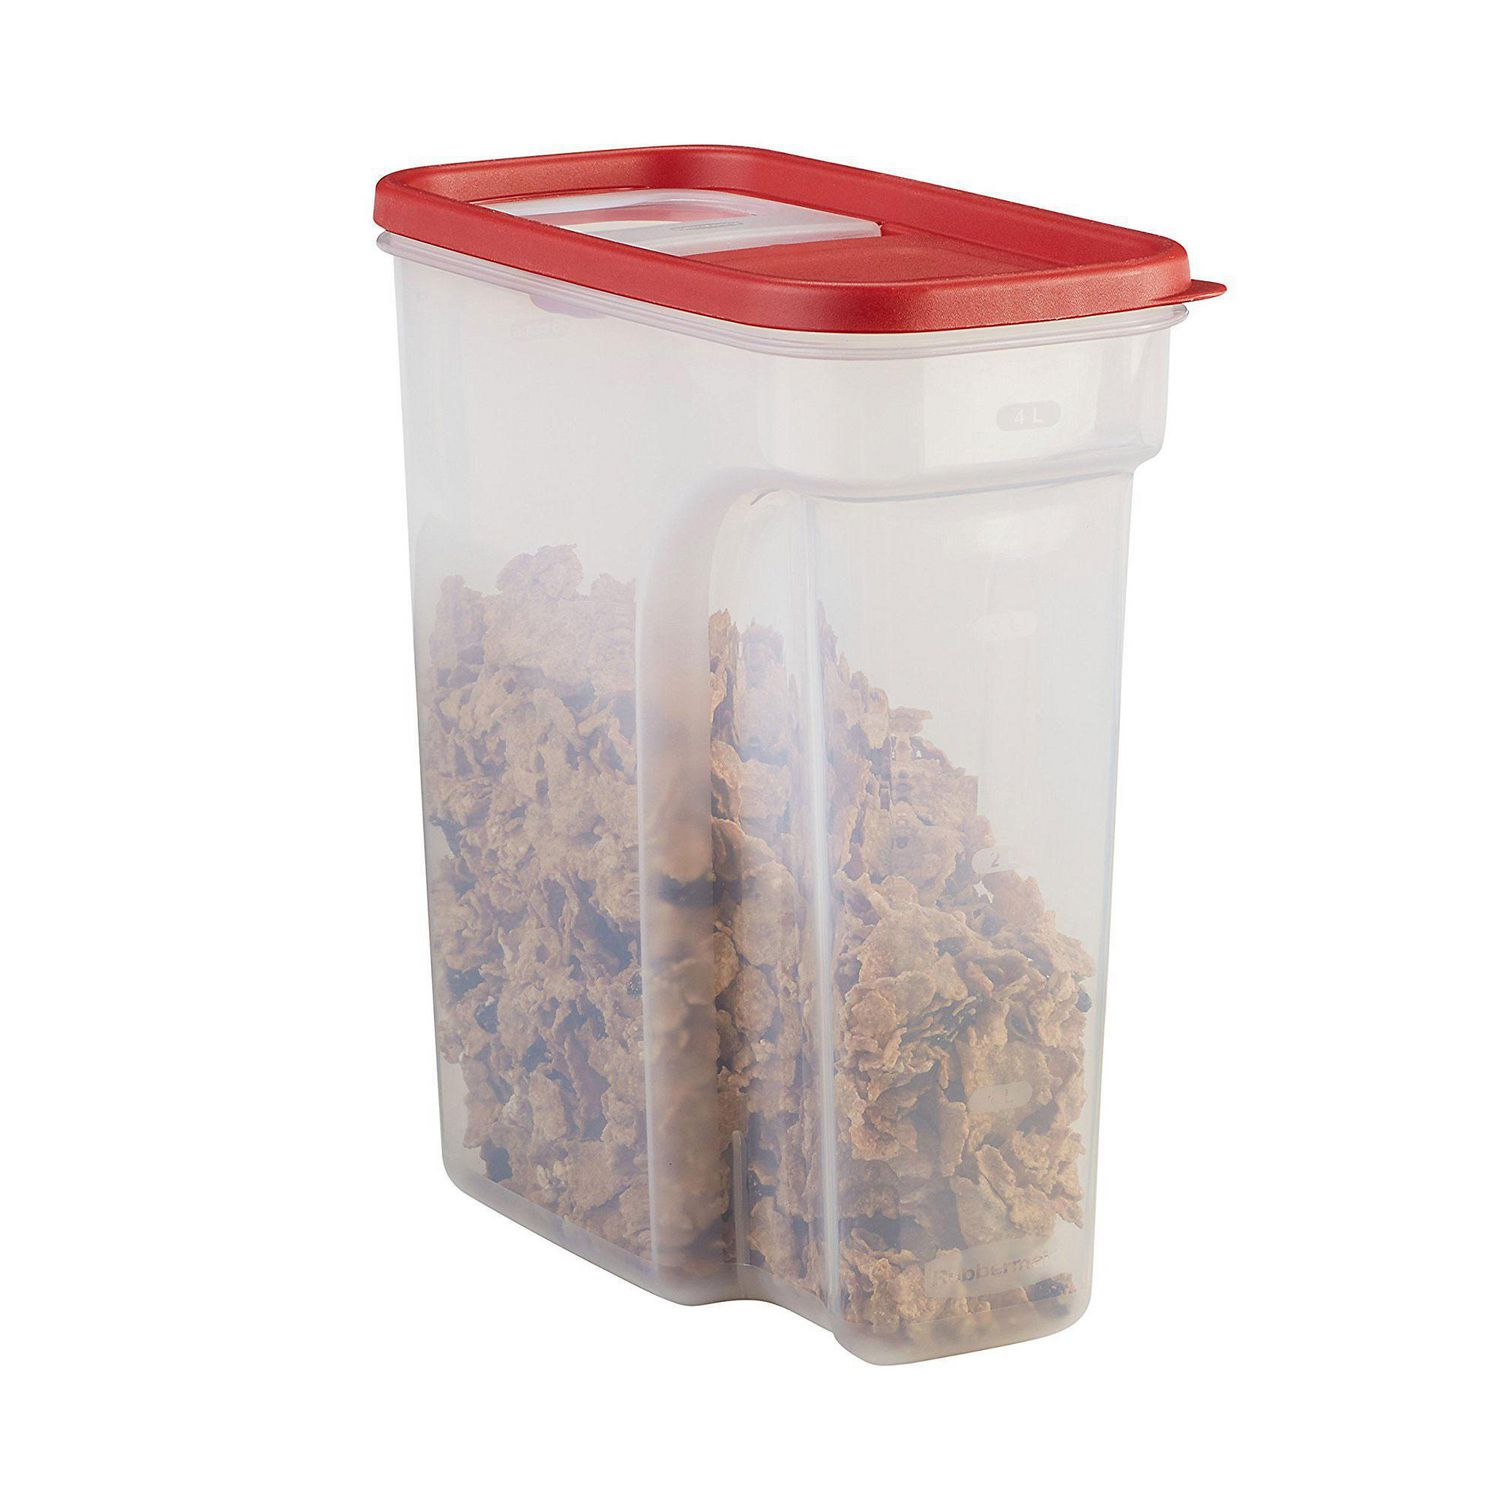 Rubbermaid Modular Cereal Container 4 2 L Walmart Canada